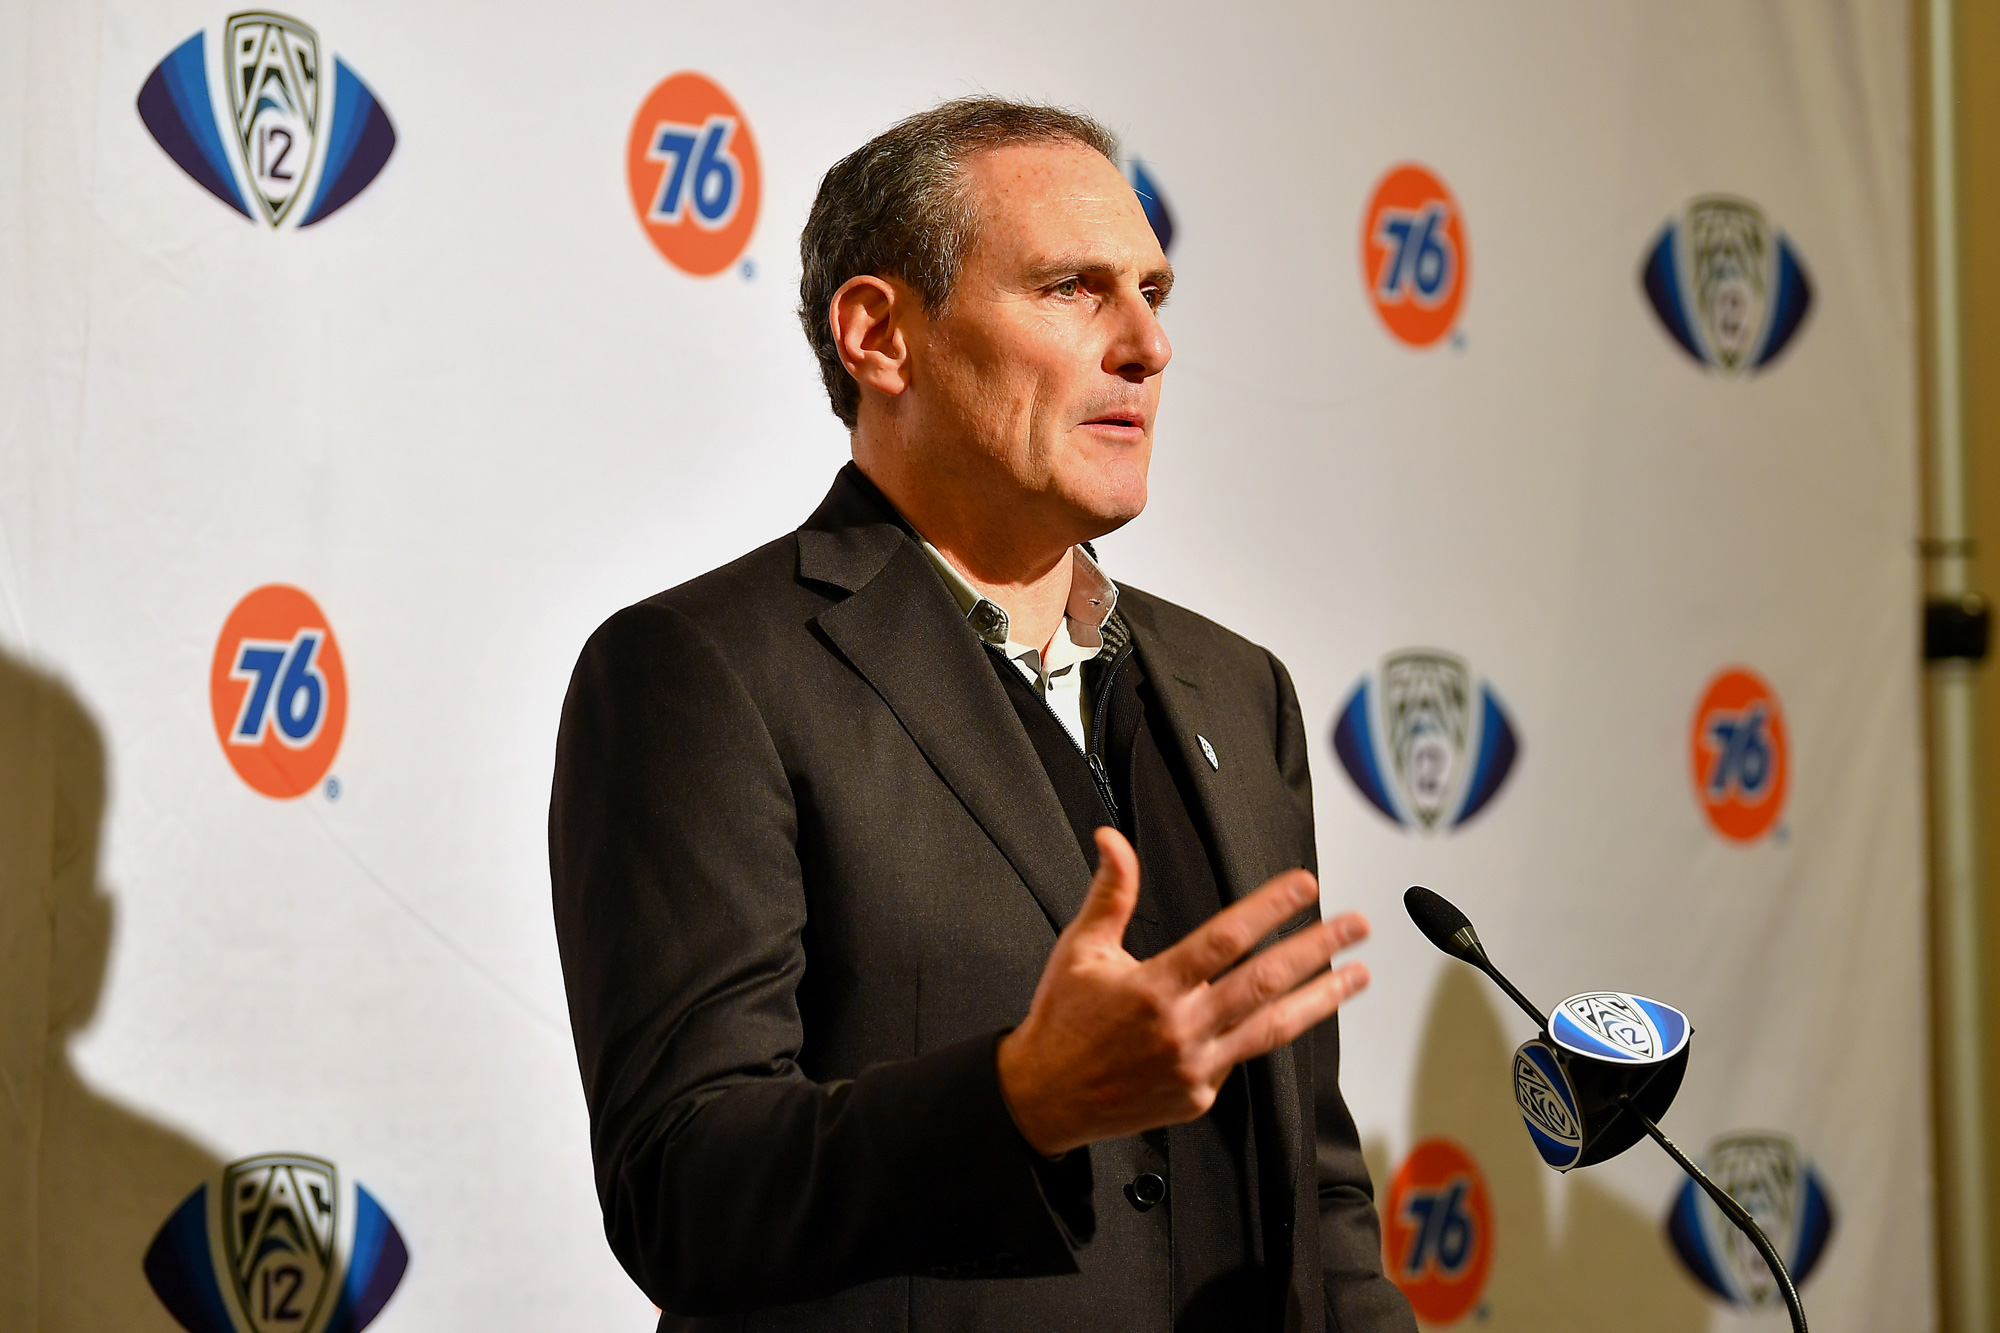 Pac-12 Commissioner Larry Scott speaks at a pre-game press conference at Levi's Stadium on December 6, 2019, in Santa Clara, California.